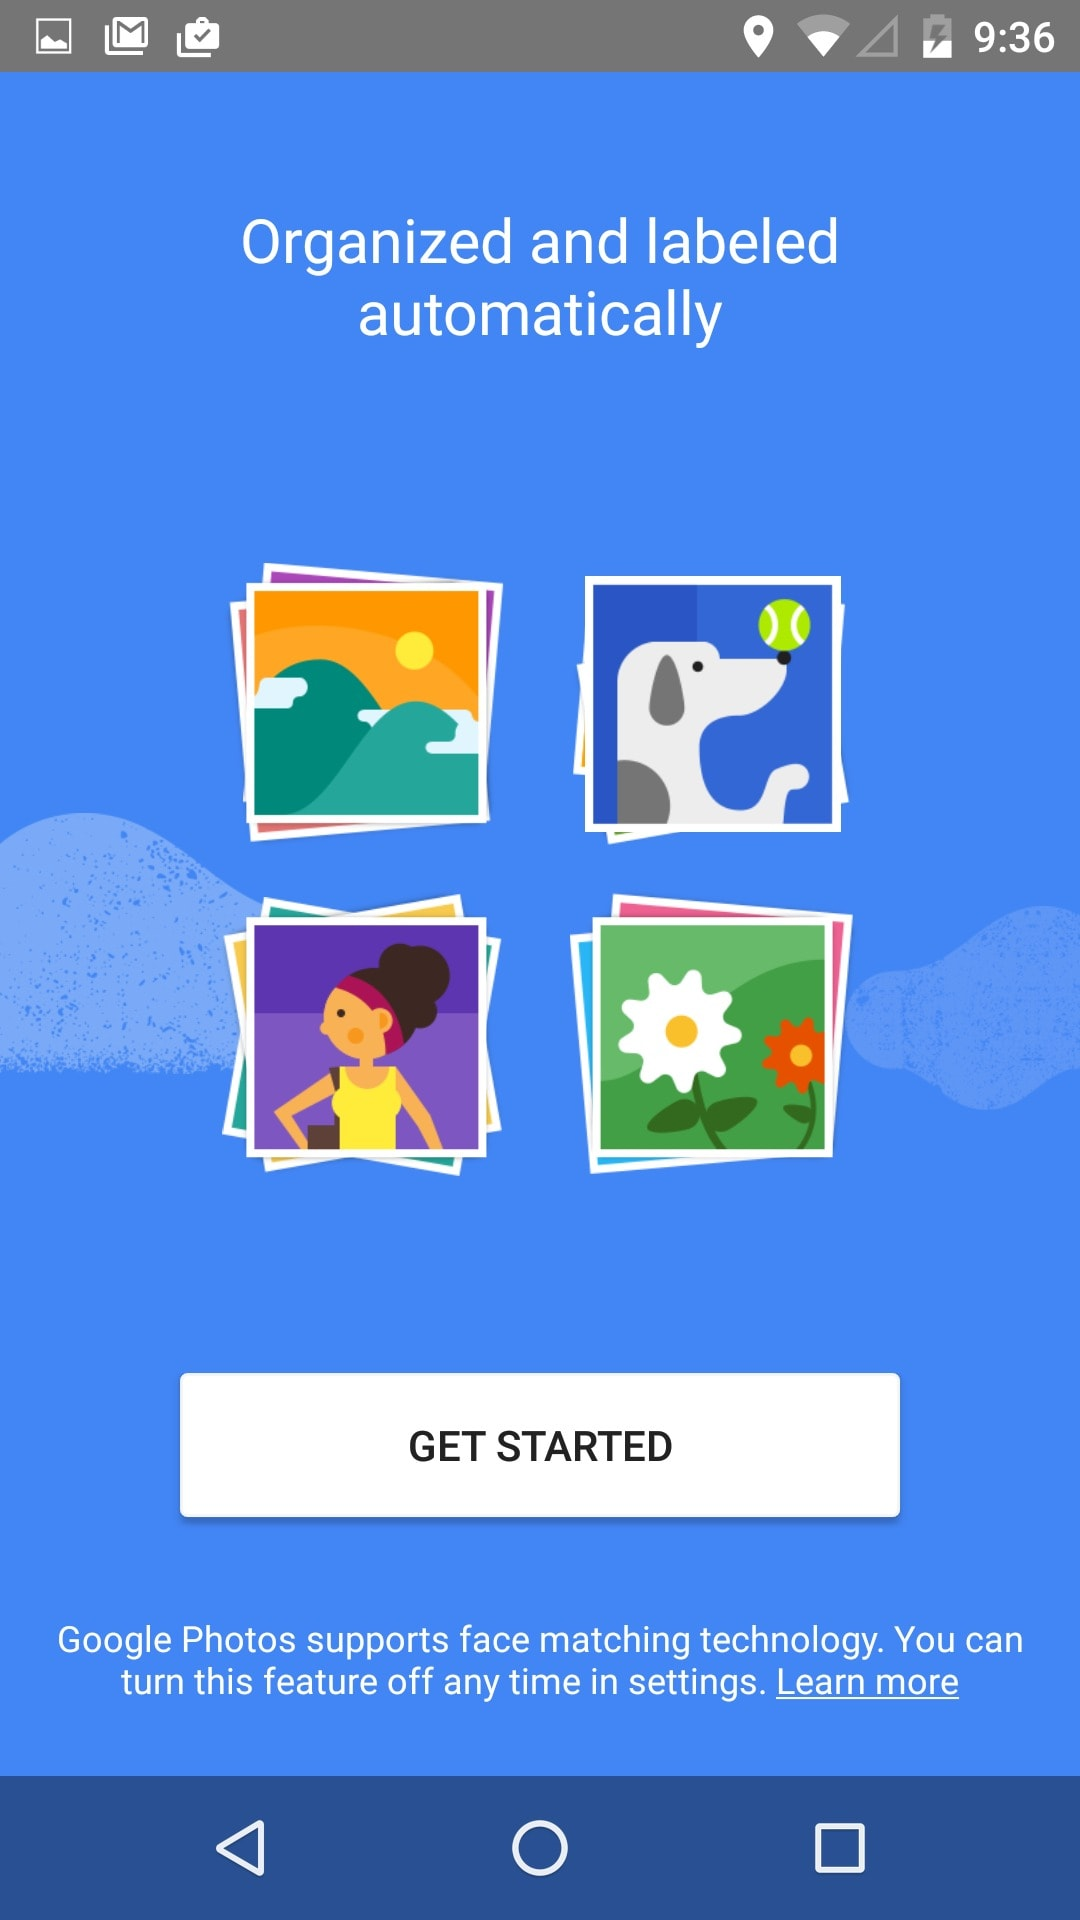 Onboarding on Android by Google Photo from UIGarage